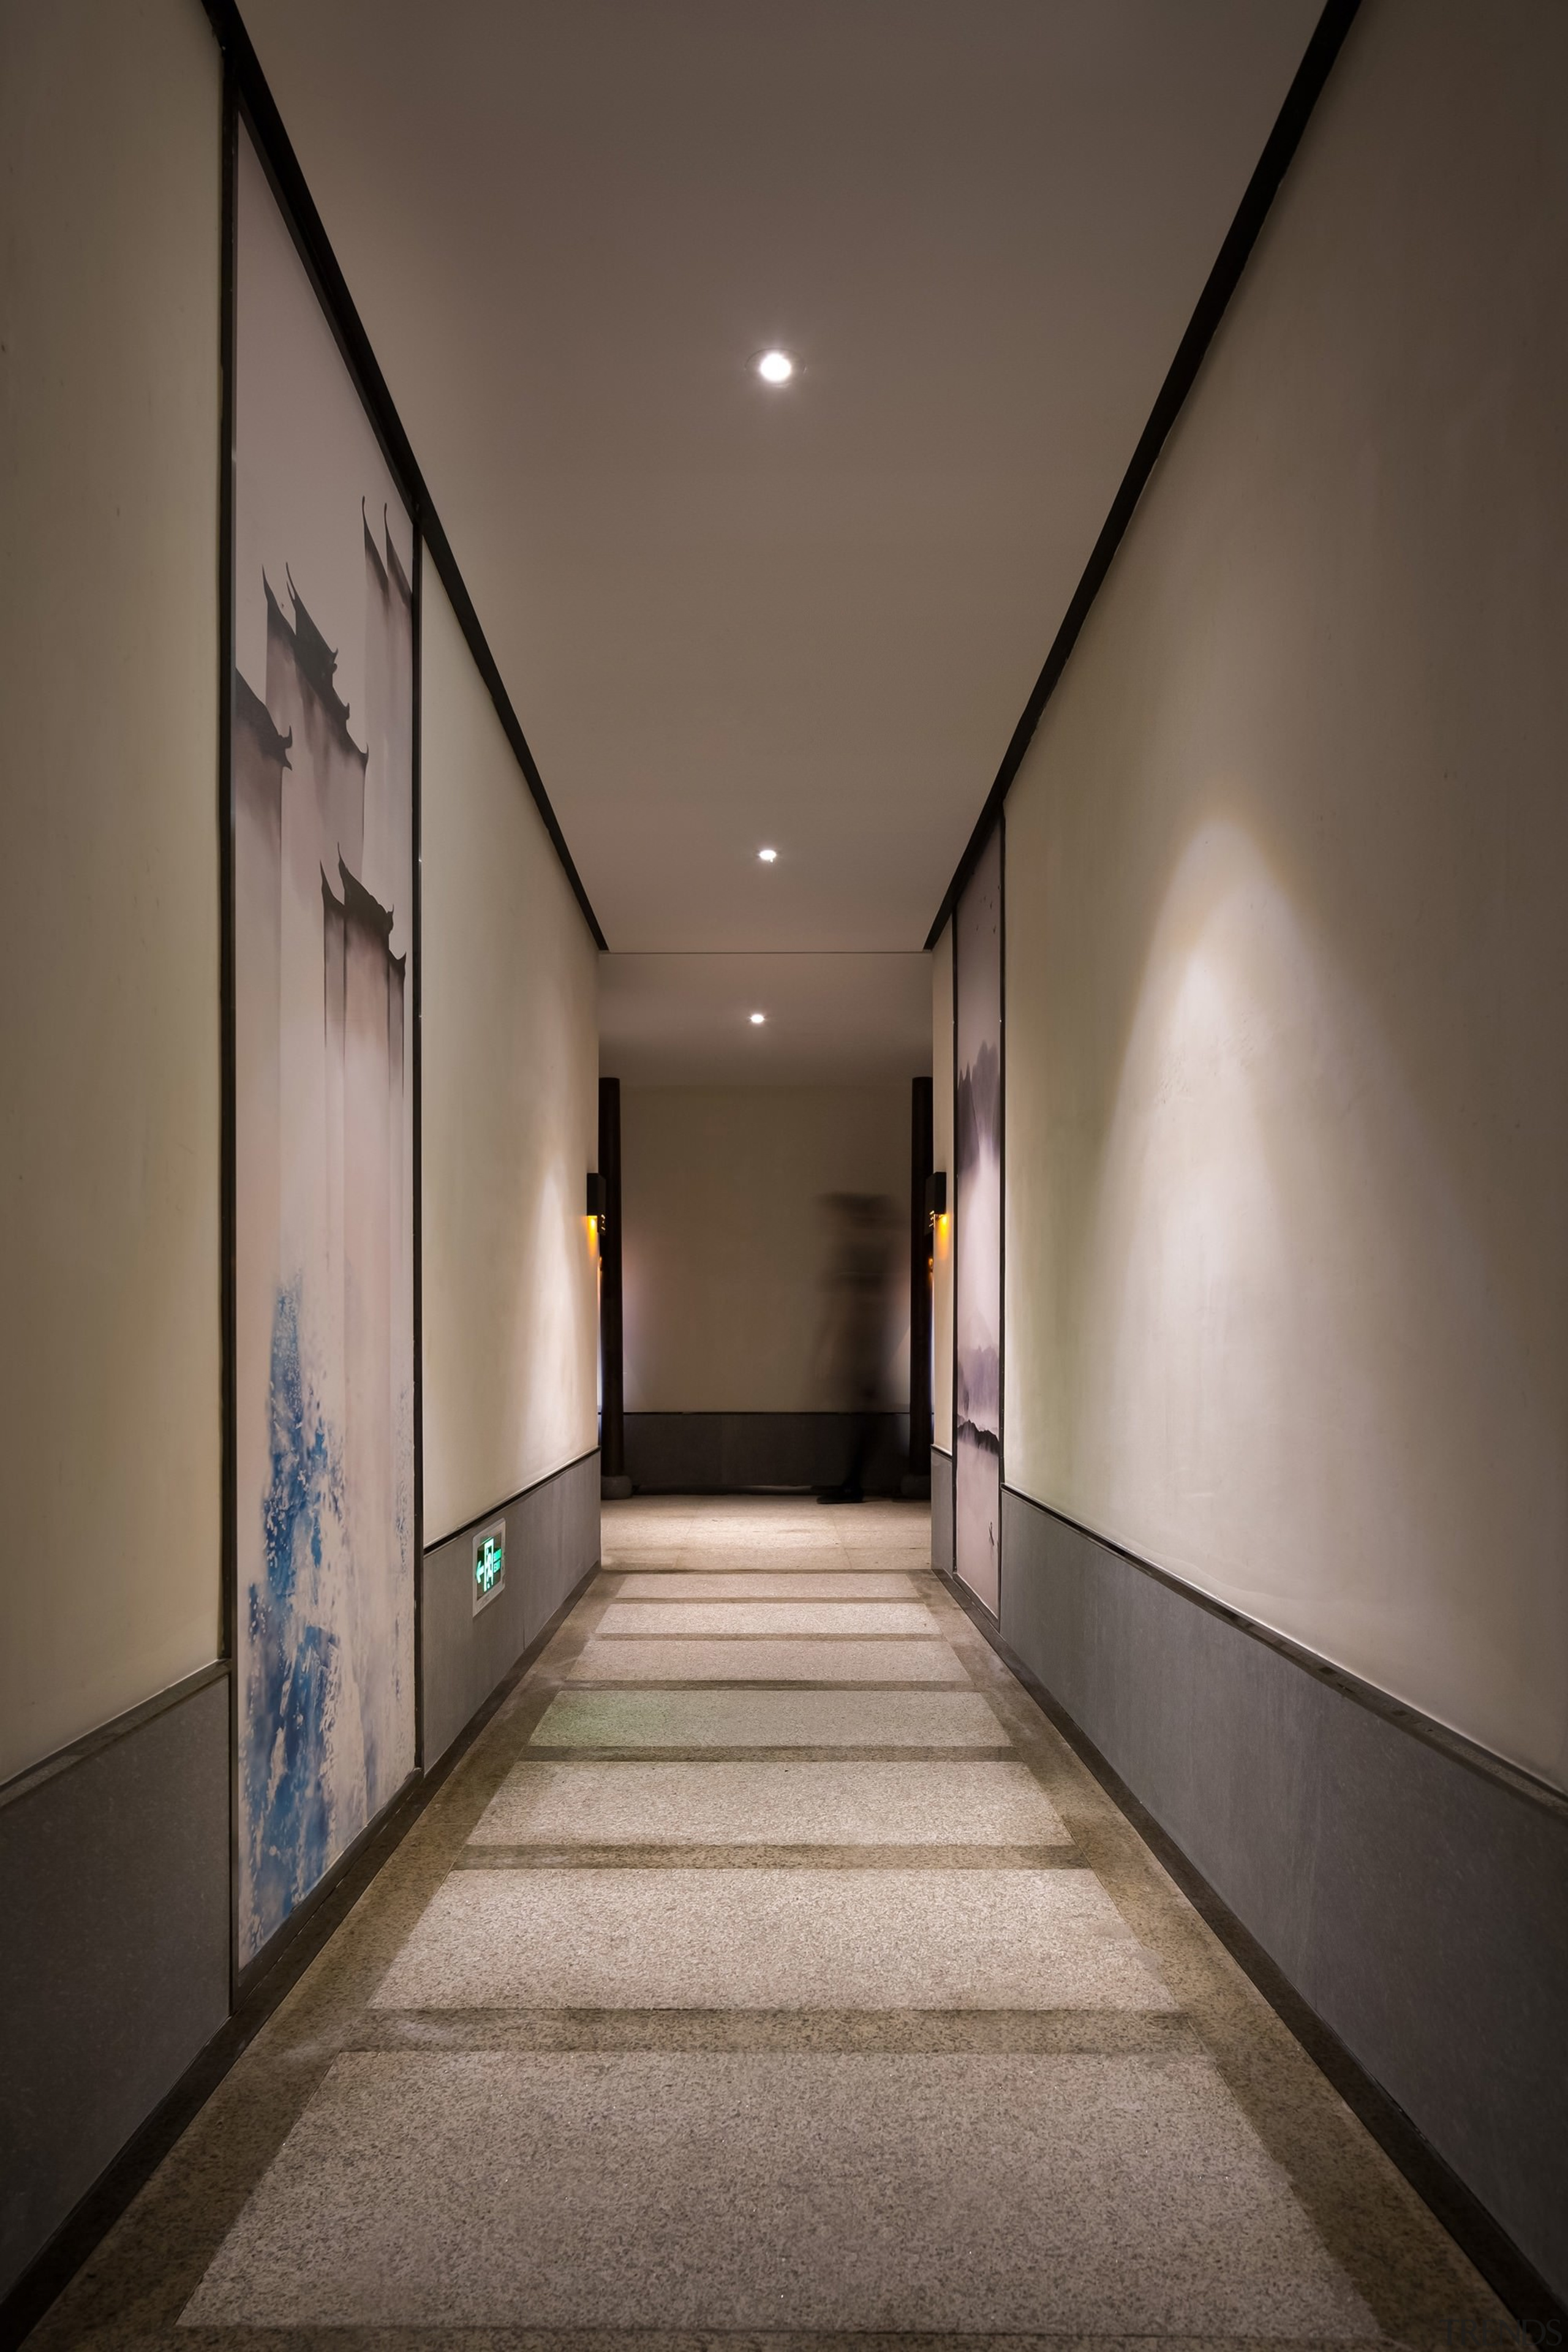 Floor to ceiling artwork lines the hallway - architecture, ceiling, daylighting, house, interior design, light, lighting, lobby, gray